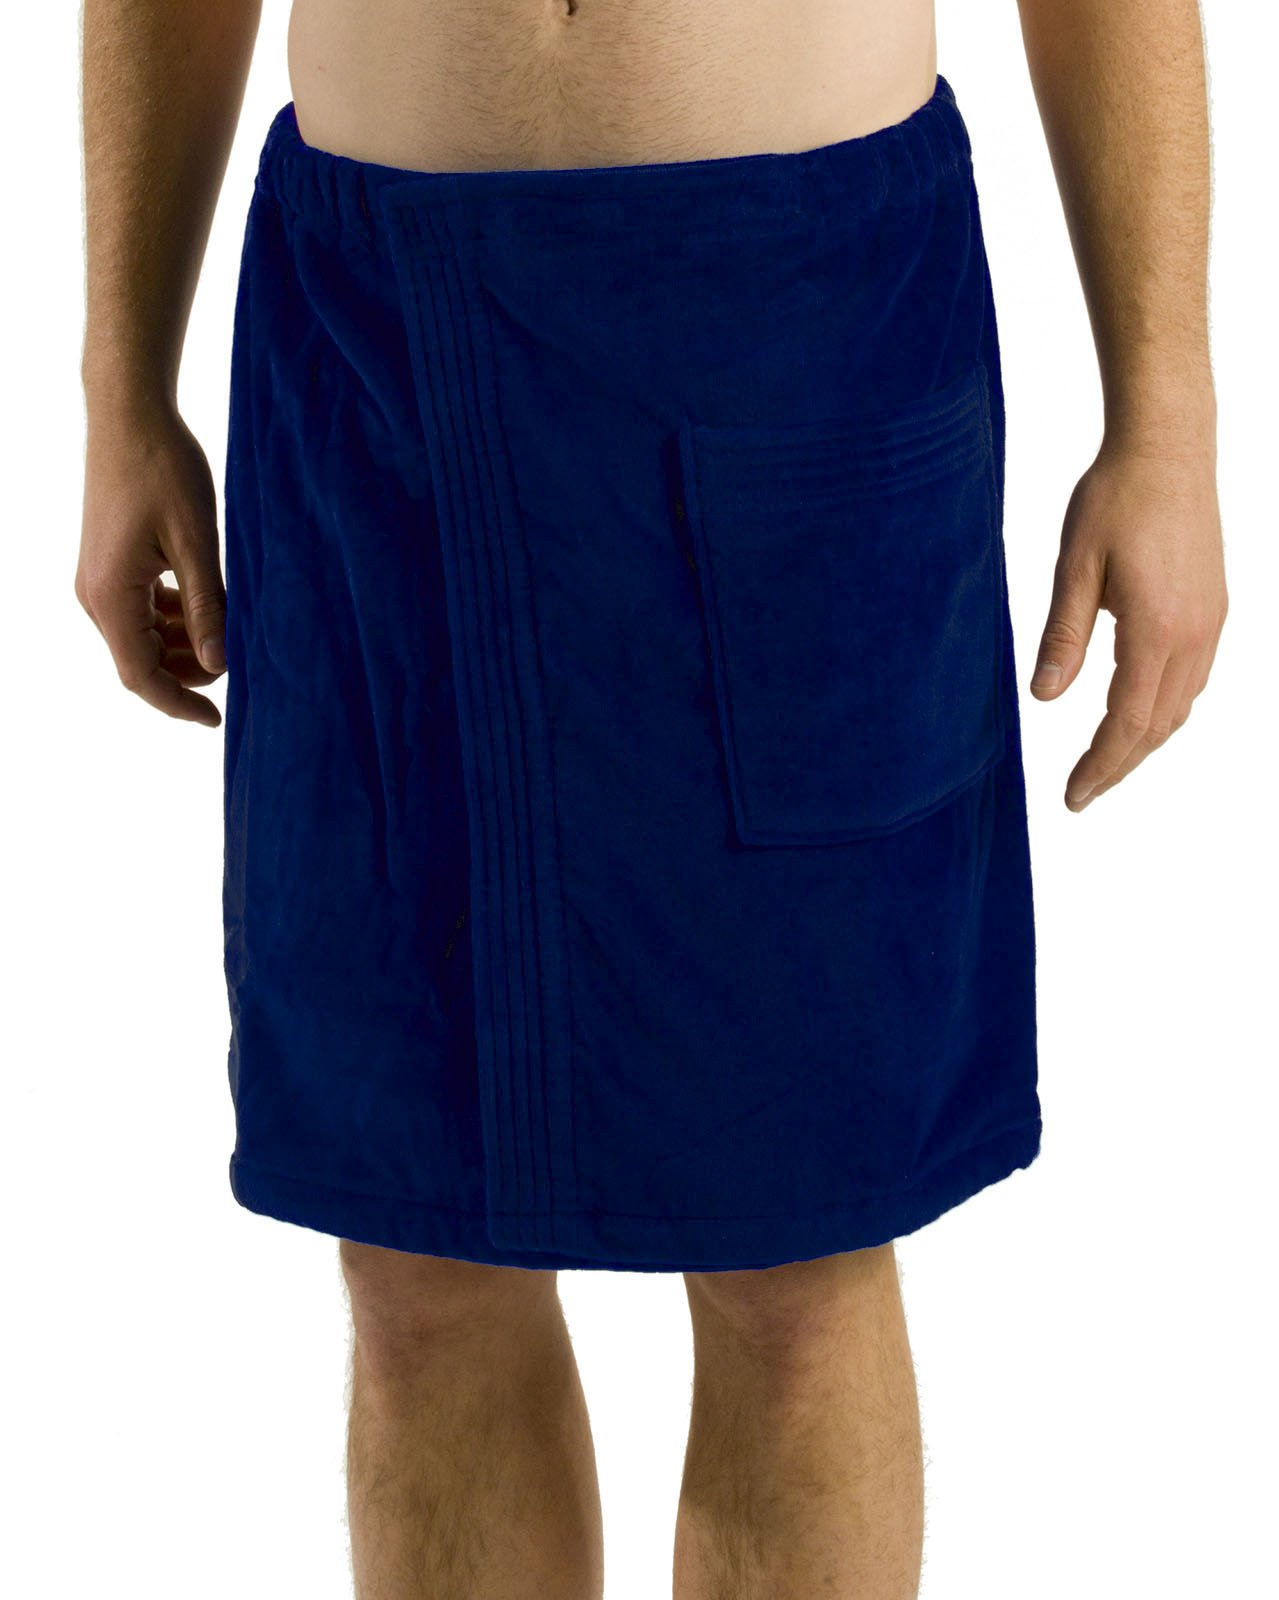 robesale Bamboo Cotton Mens Spa Wrap, Navy, S/M